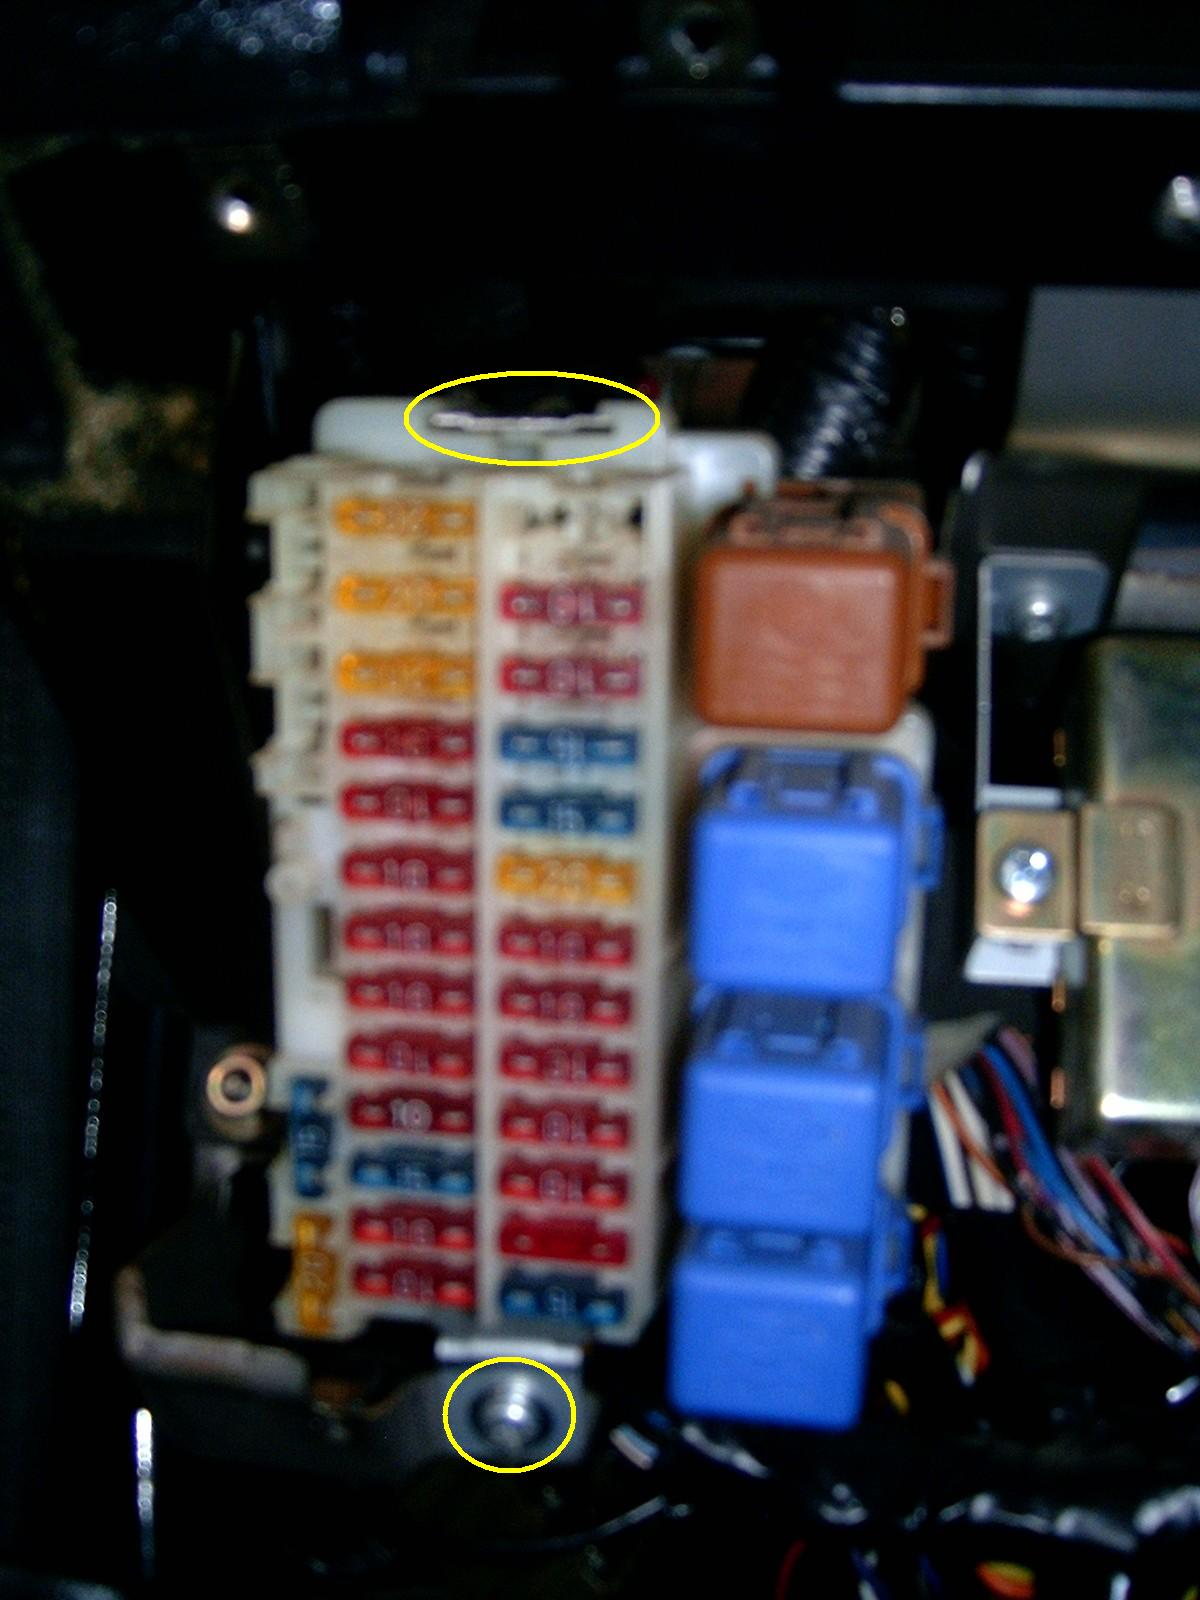 nissan_maxima_dash_removal_18 nissan maxima digital dash hud tutorial 2002 maxima fuse box diagram at readyjetset.co